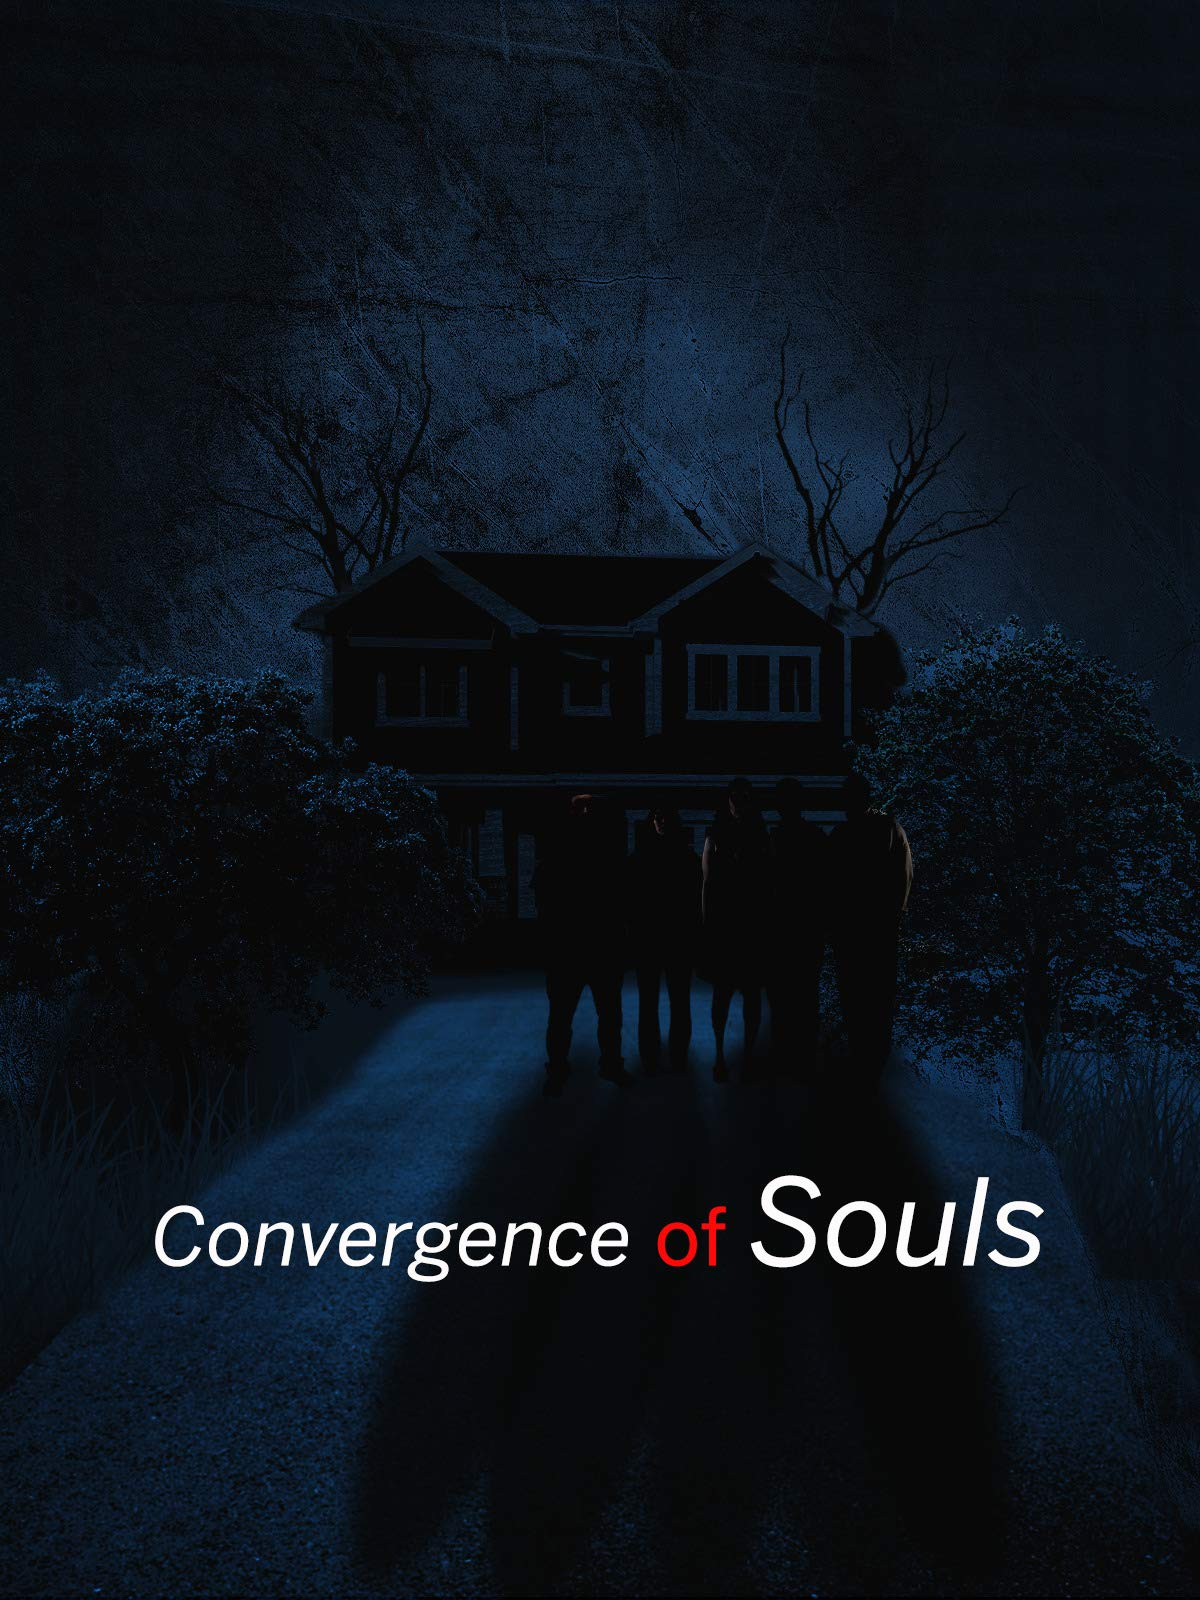 Convergence of Souls